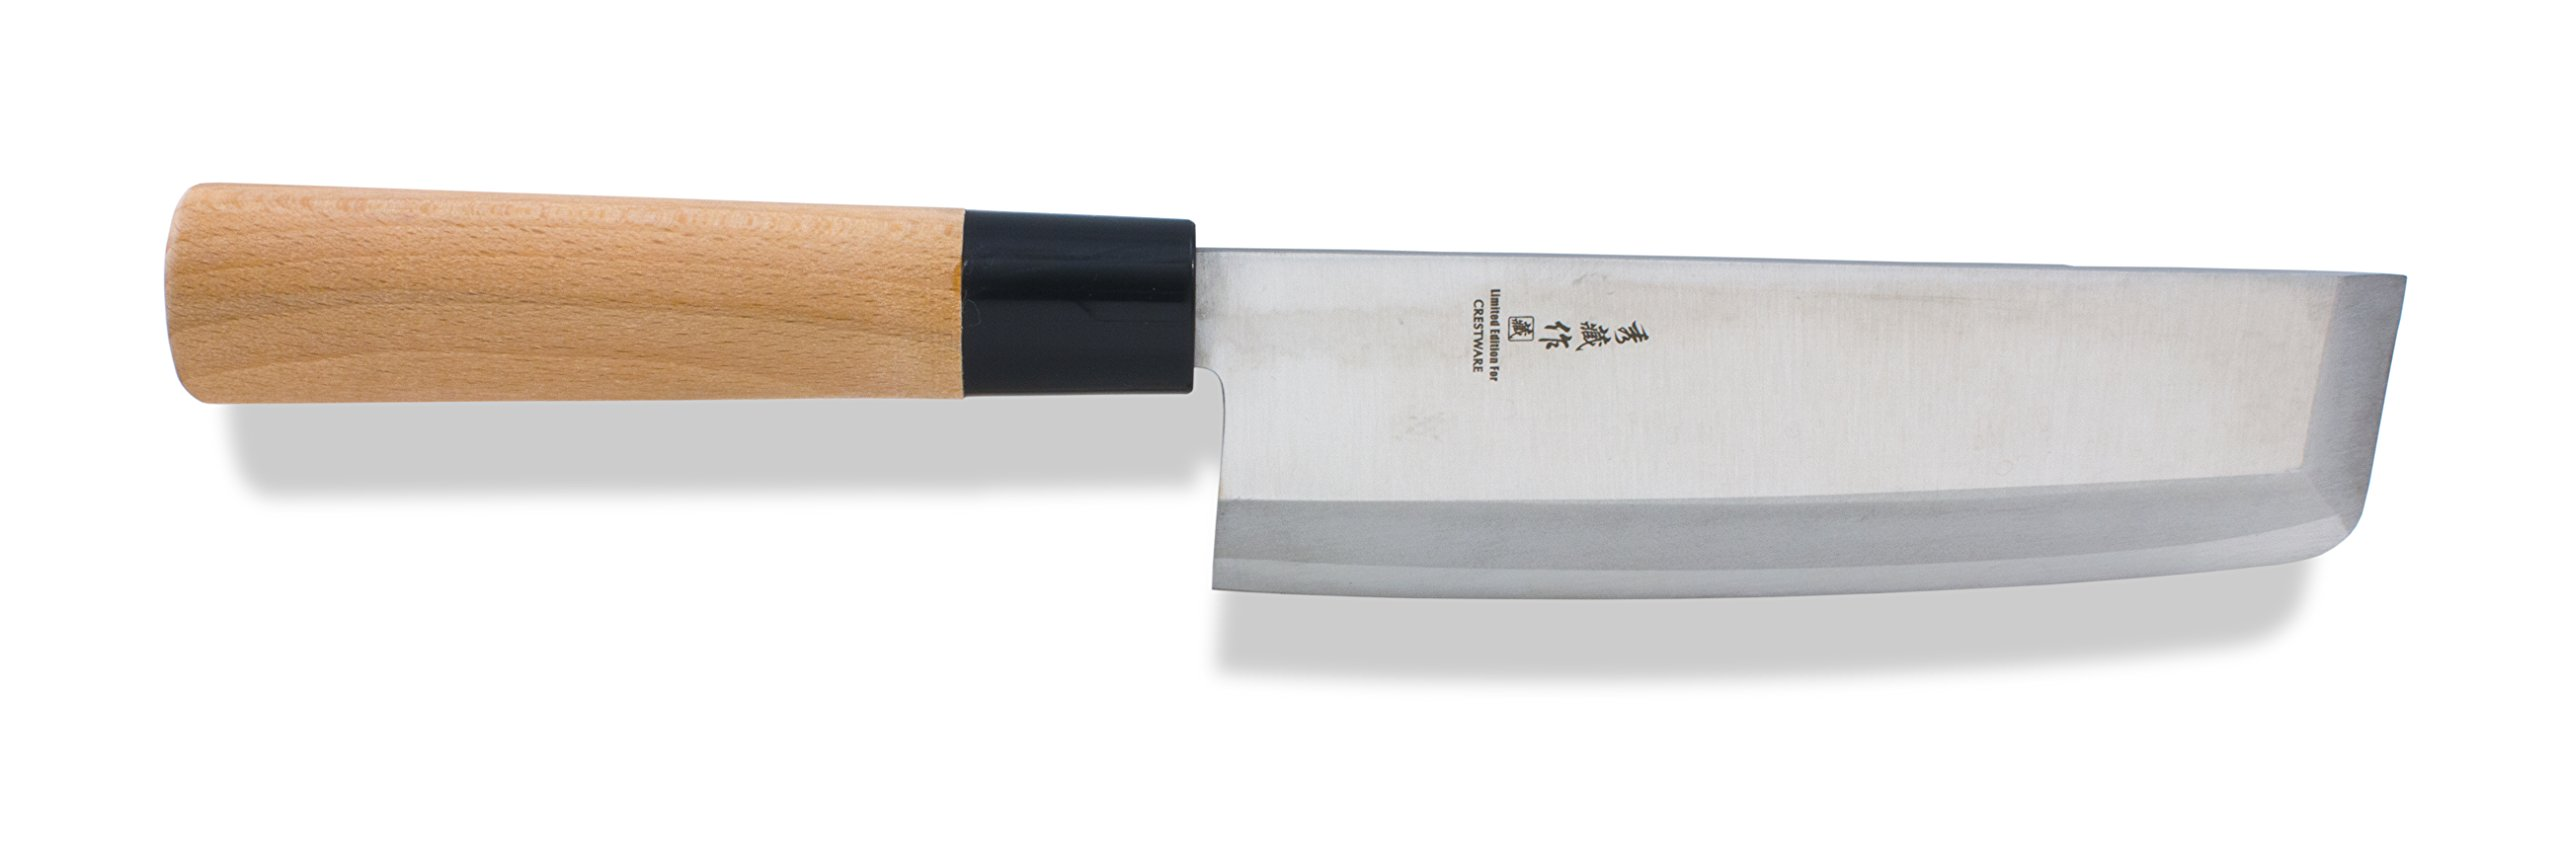 Crestware KN314 Nakiri Knife, 7'', Silver by CRESTWARE